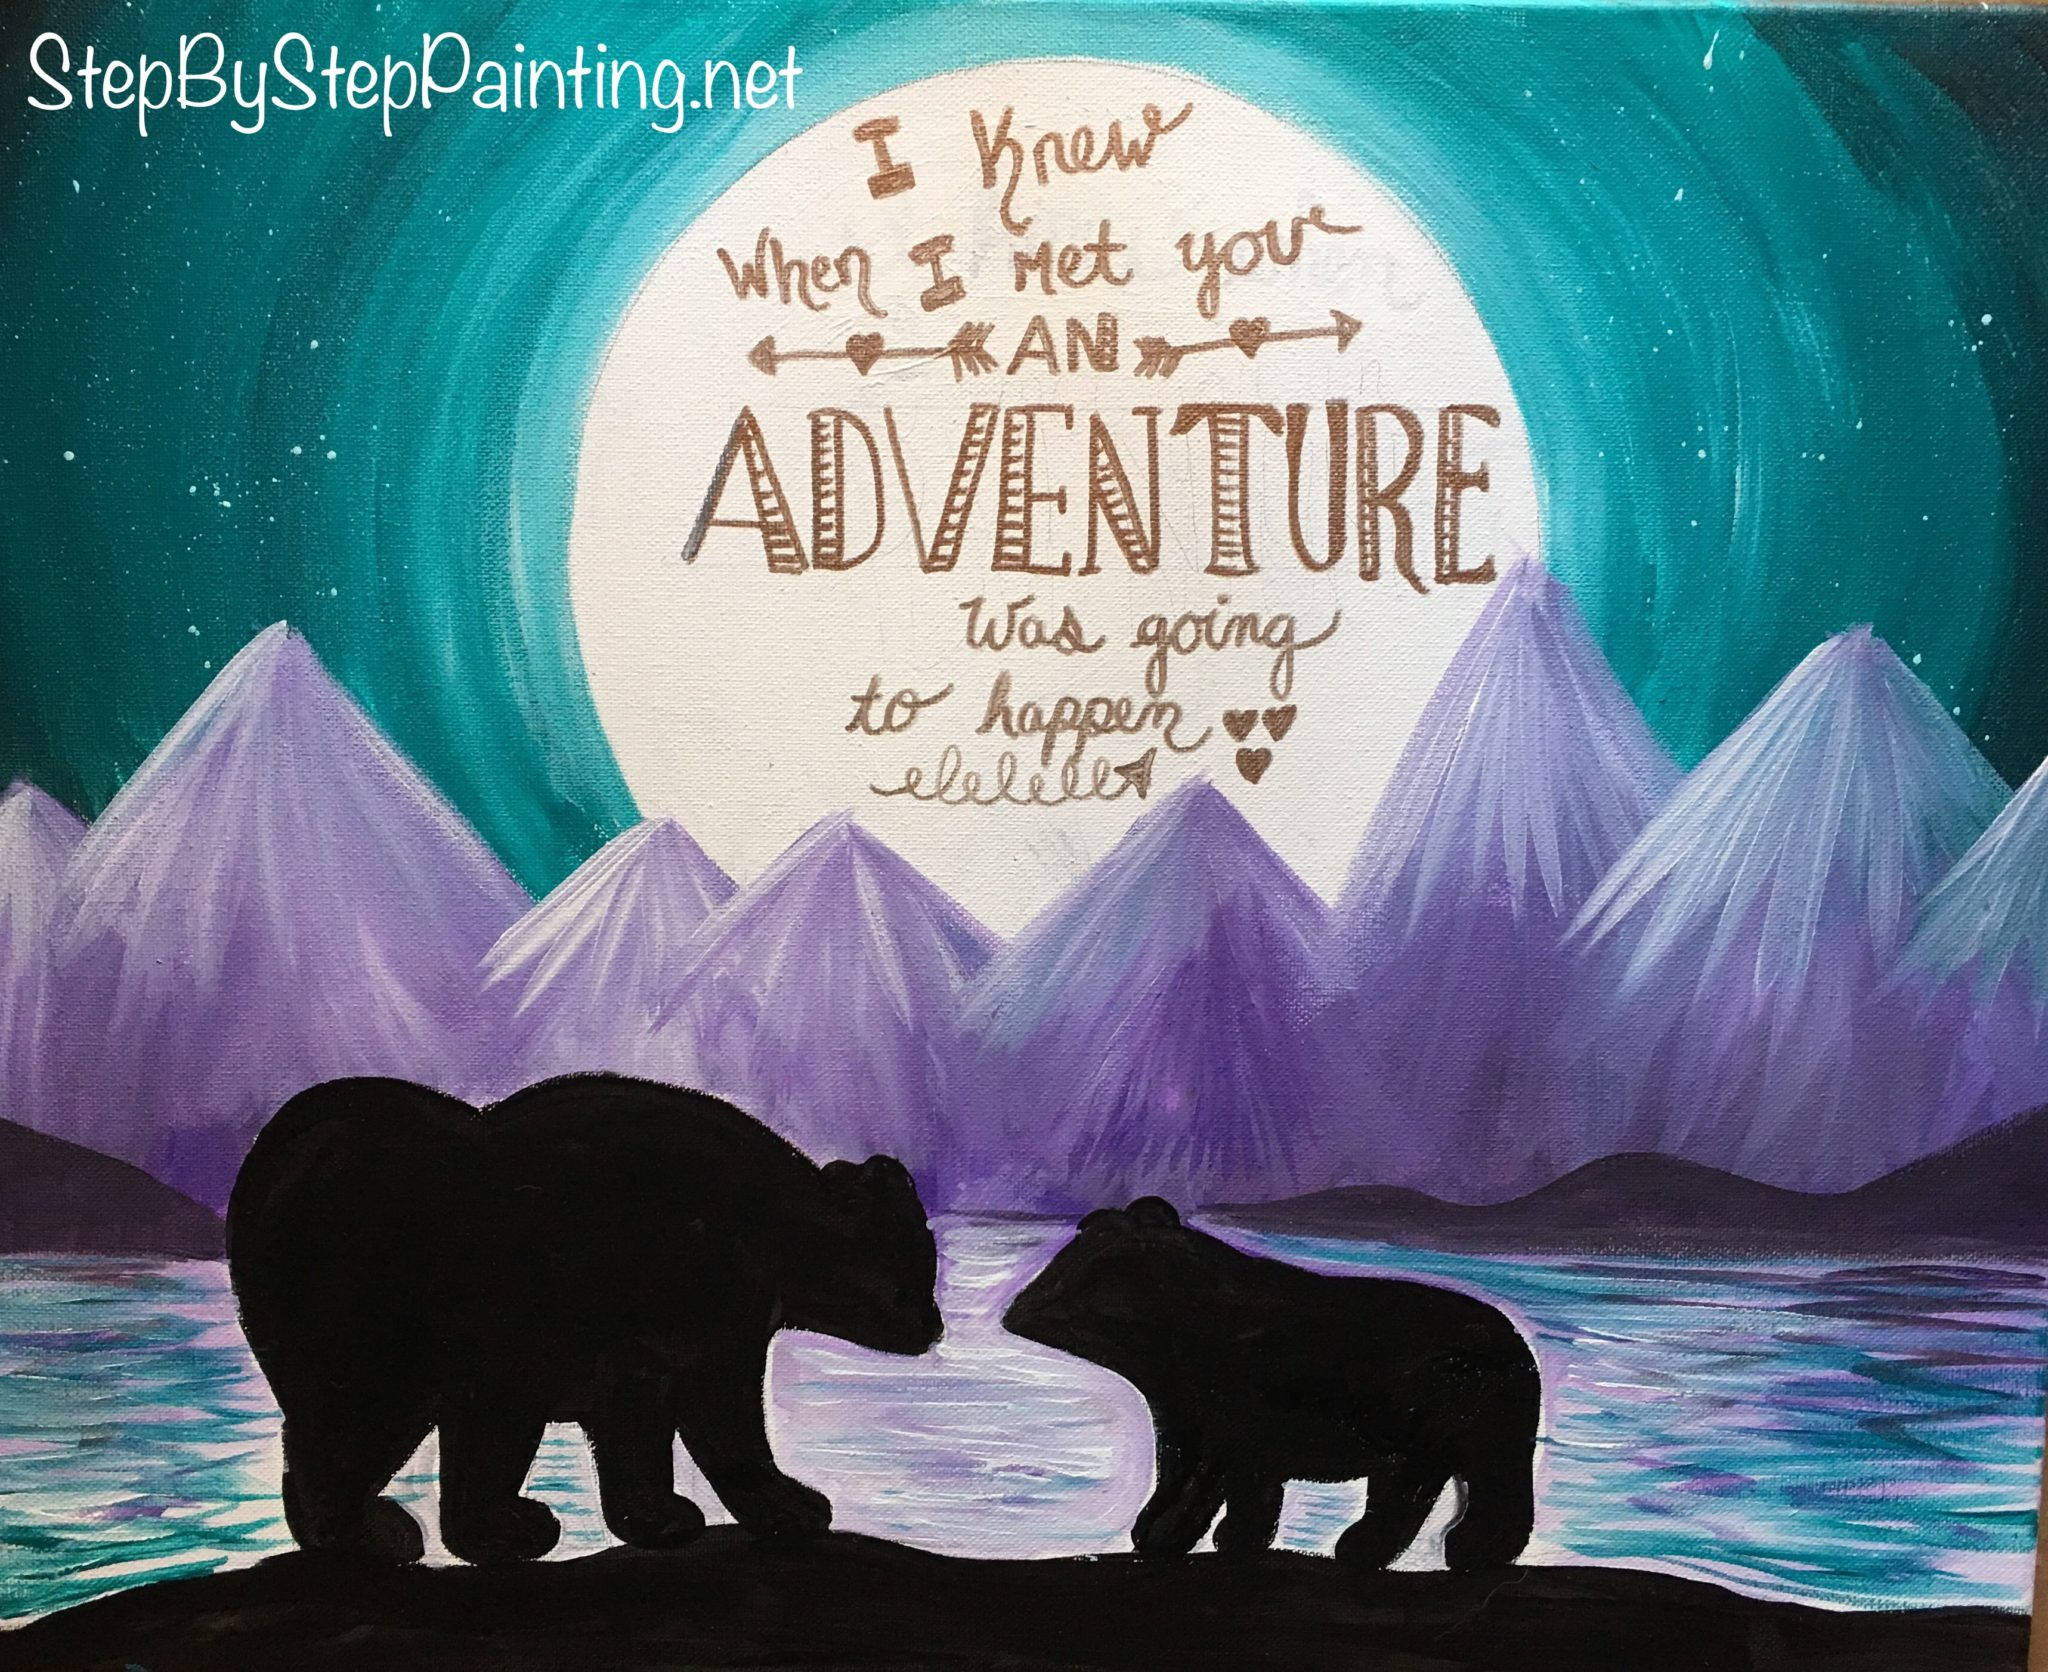 Step By Step Painting - Tracie's Acrylic Canvas Tutorials - photo#10